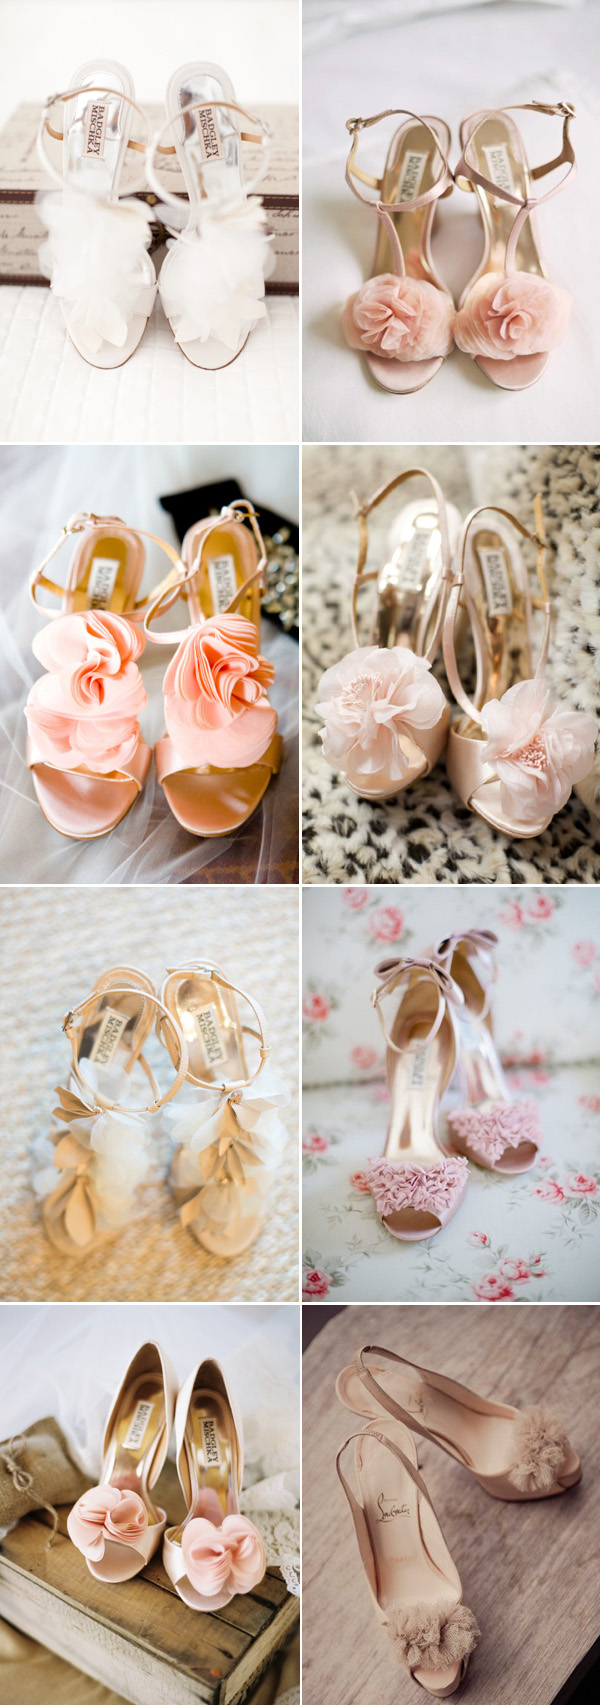 Wedding_Philippines_Most_Loved_Wedding_Shoes_for_Brides_ruffles-wedding-shoes